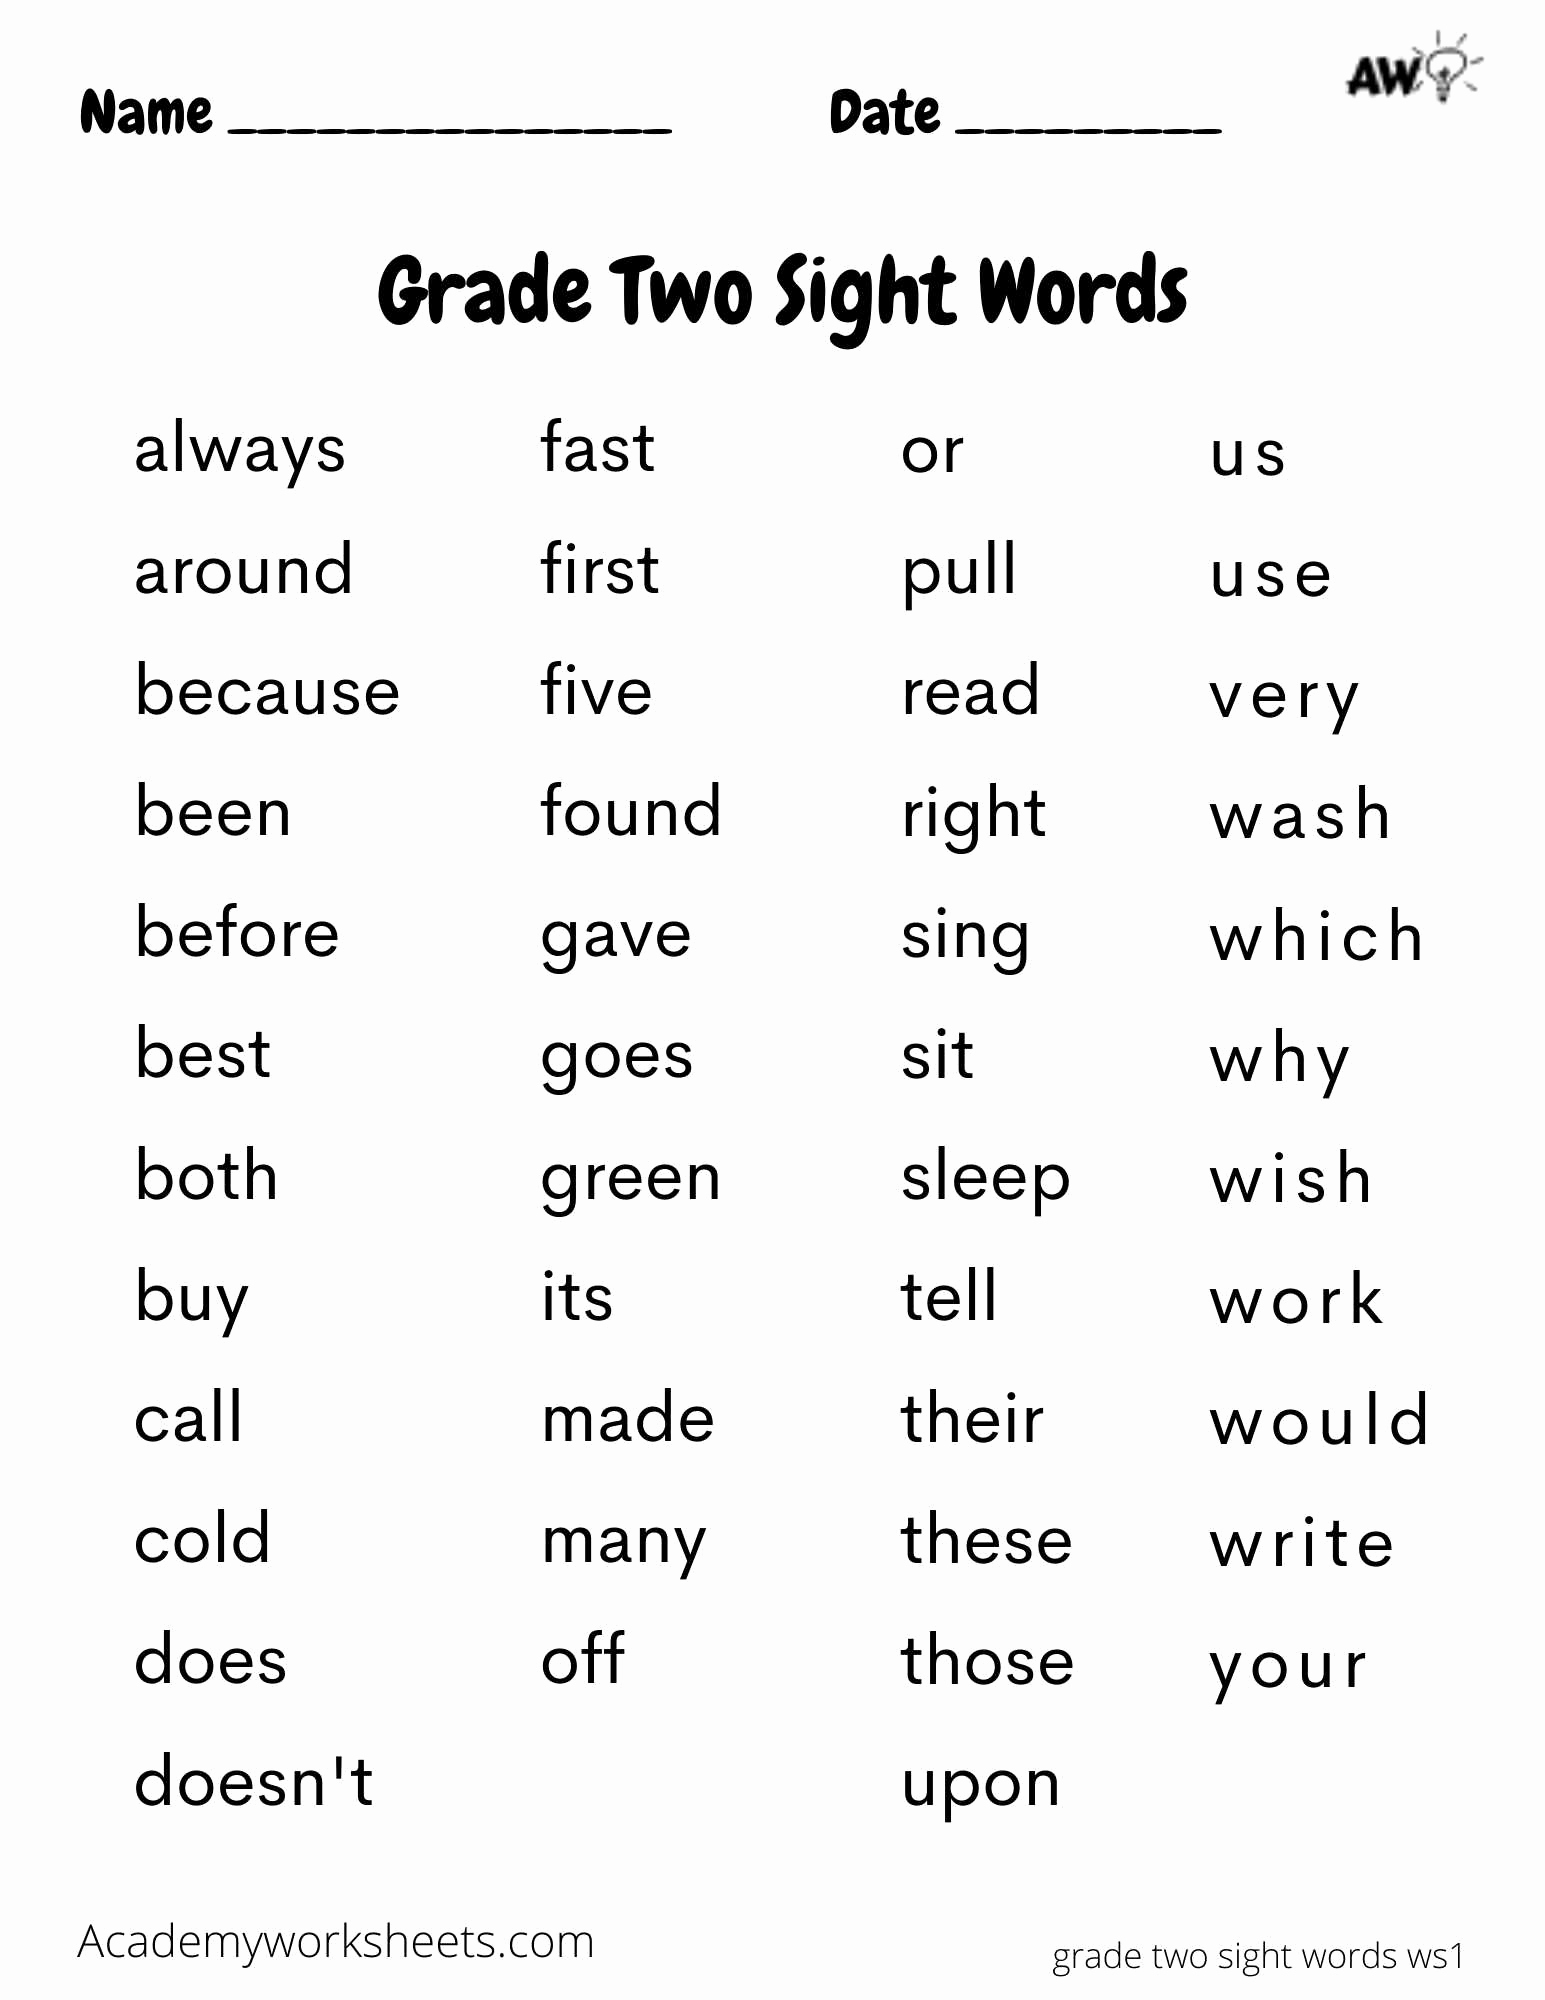 Alphabetical order Worksheets 2nd Grade Beautiful 2nd Grade Sight Words Dolch Academy Worksheets